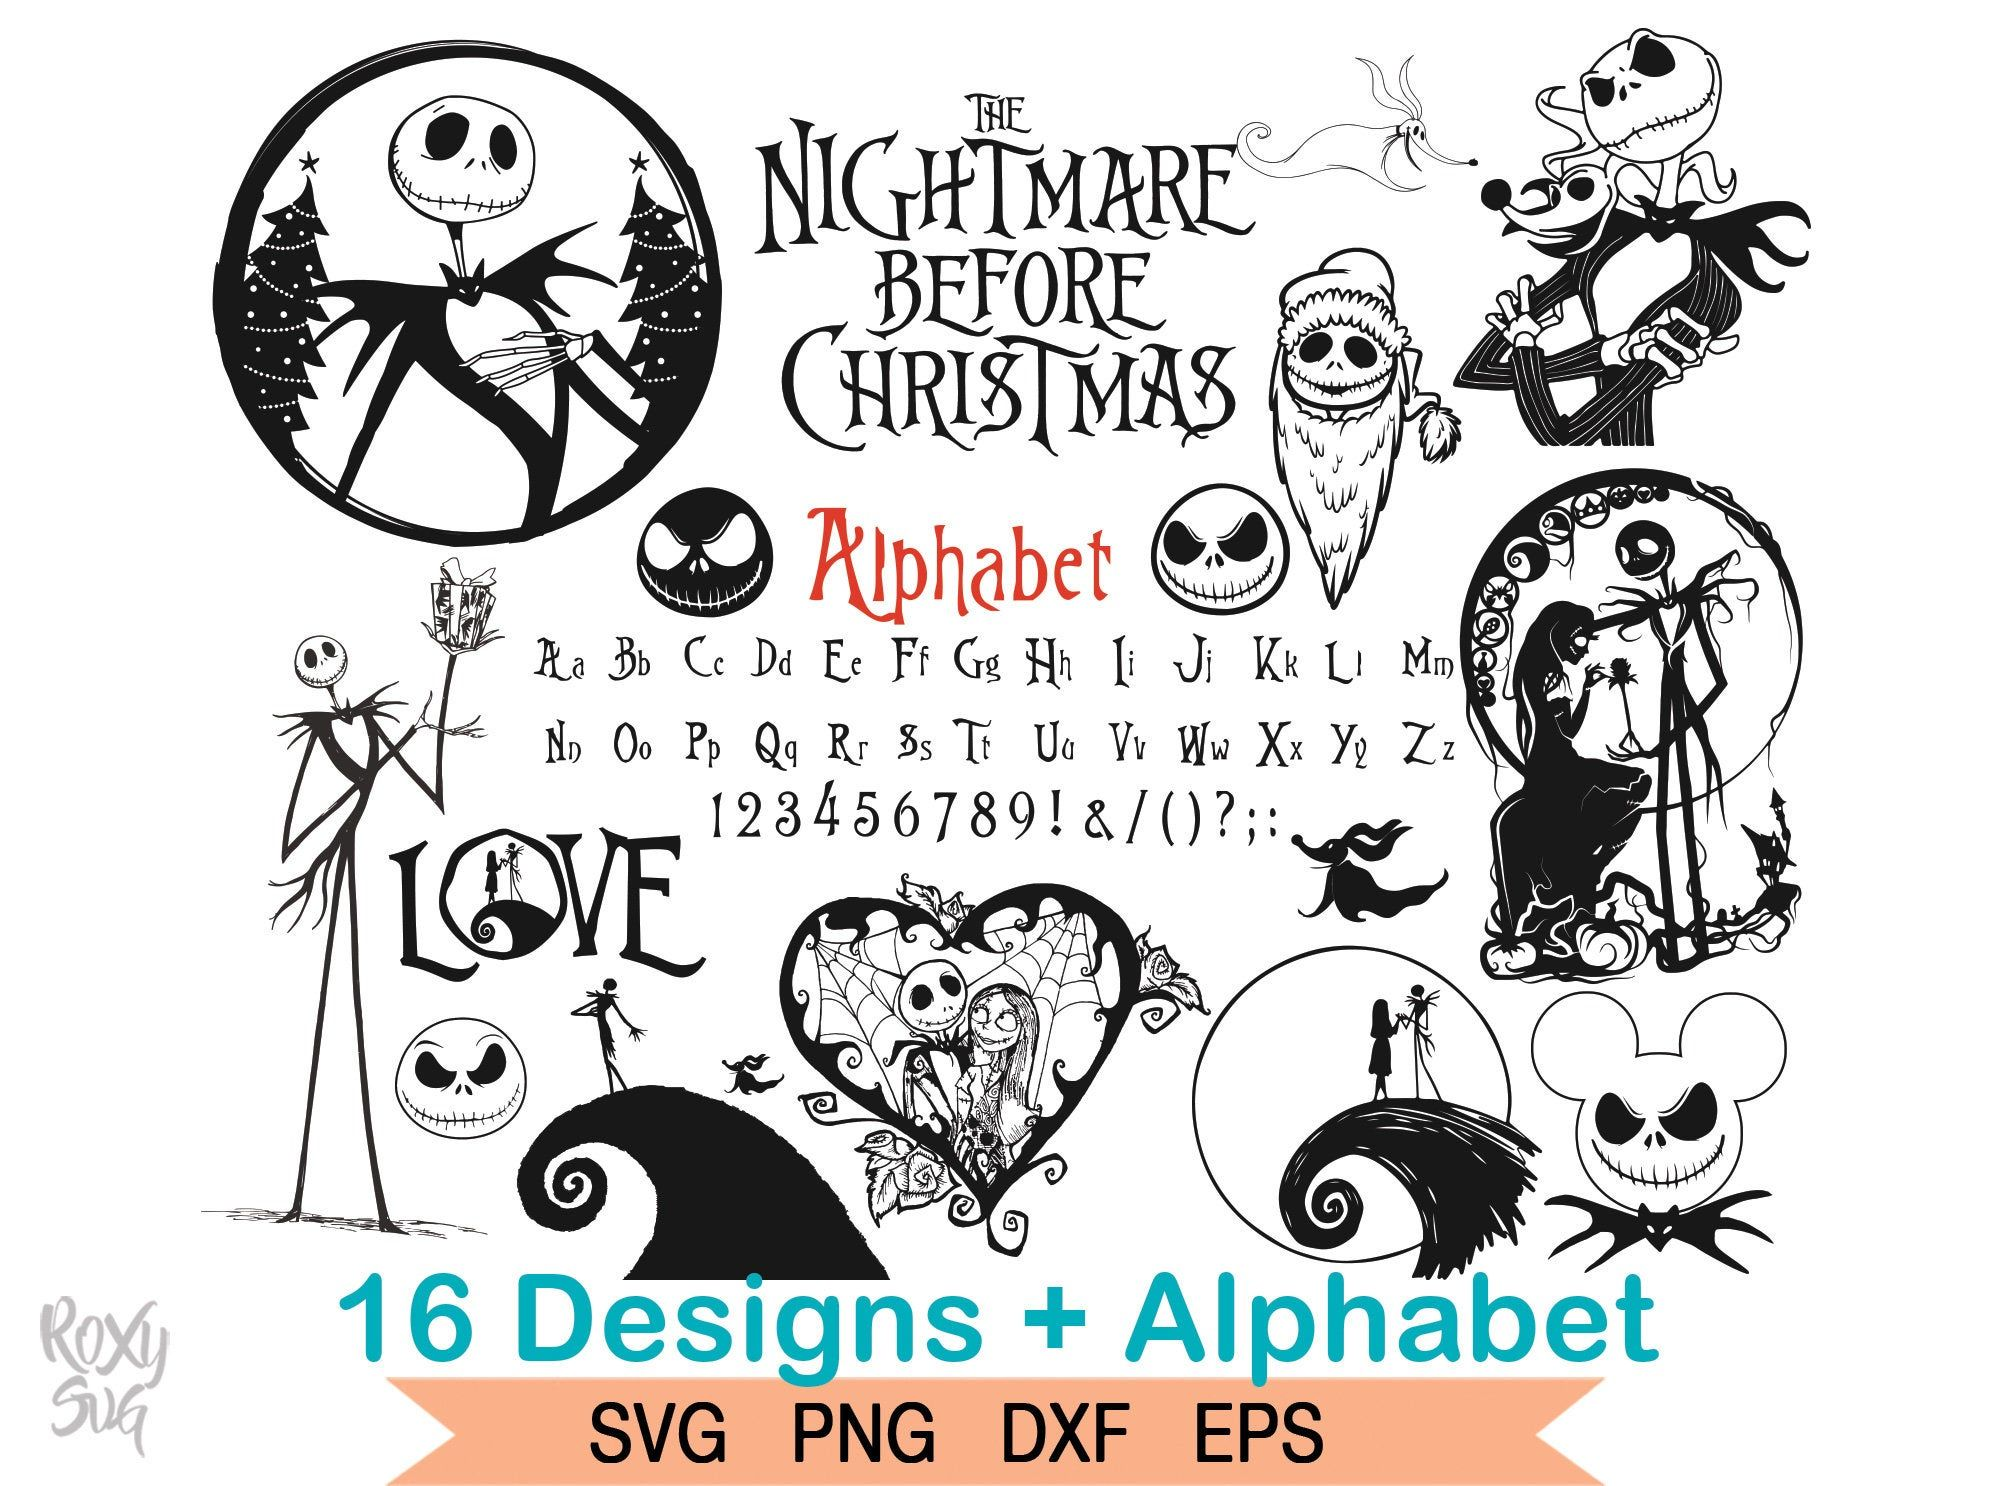 Im A Nightmare Before Christmas Svg Christmas Svg Jack Skellington Svg Christmas Svg Files For Cricut Merr In 2020 Christmas Svg Christmas Svg Files Valentines Svg